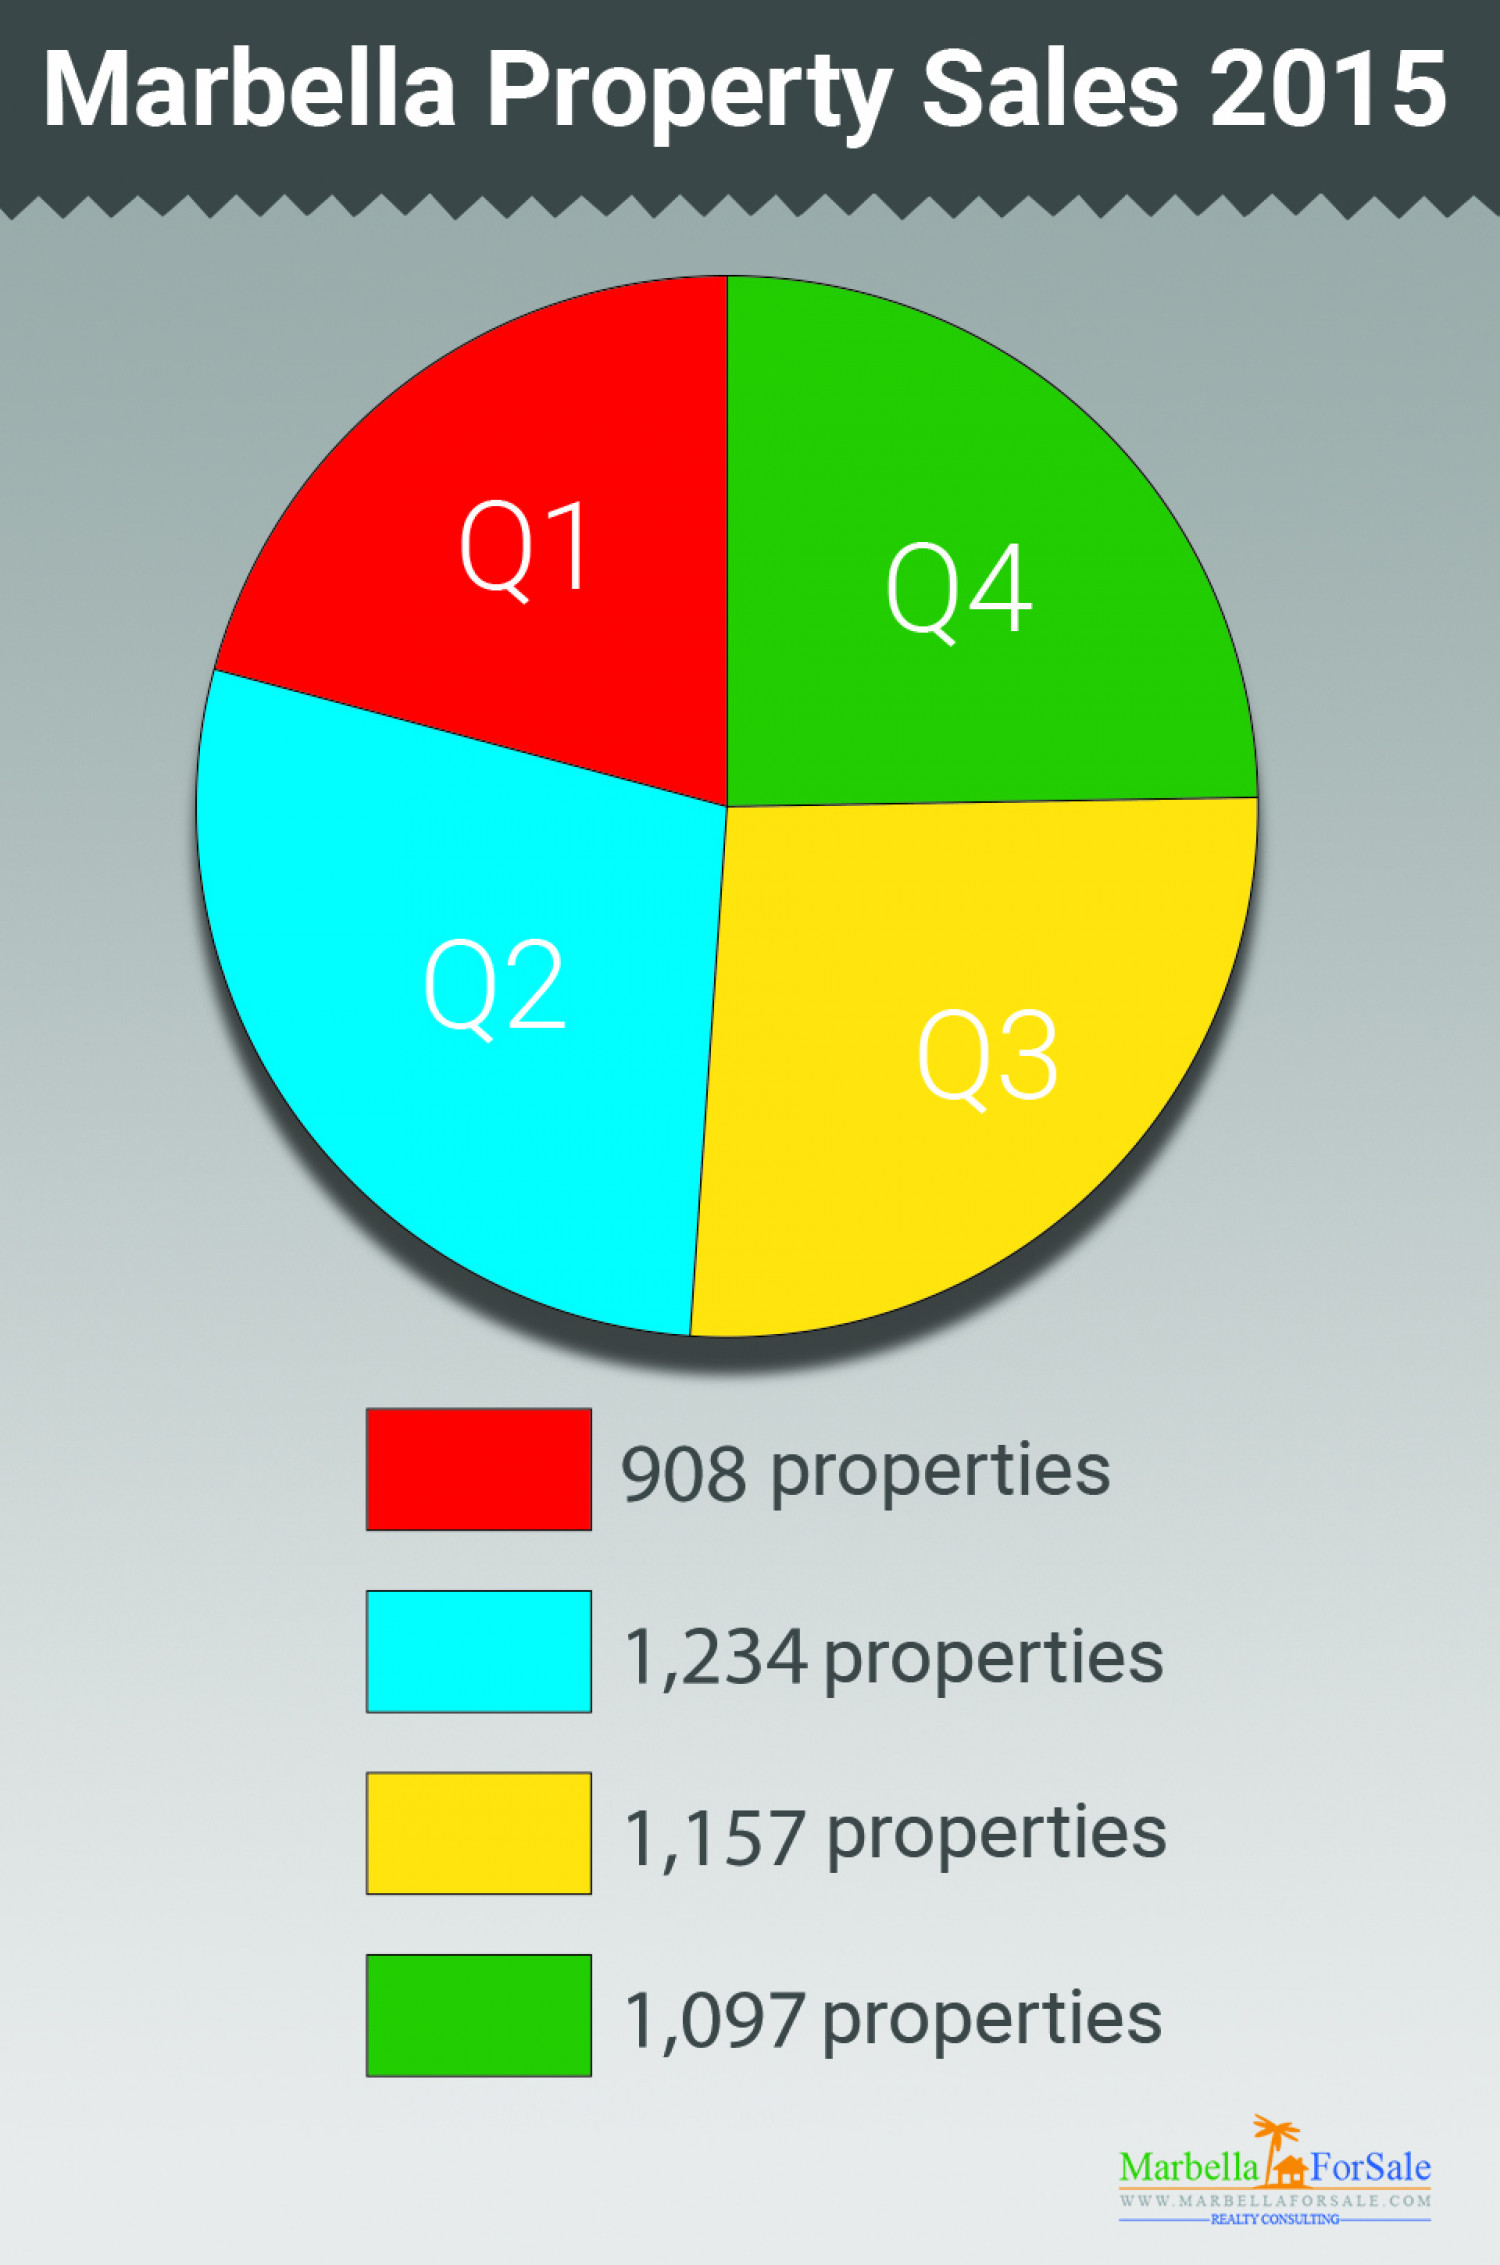 Marbella Property Sales 2015 Infographic